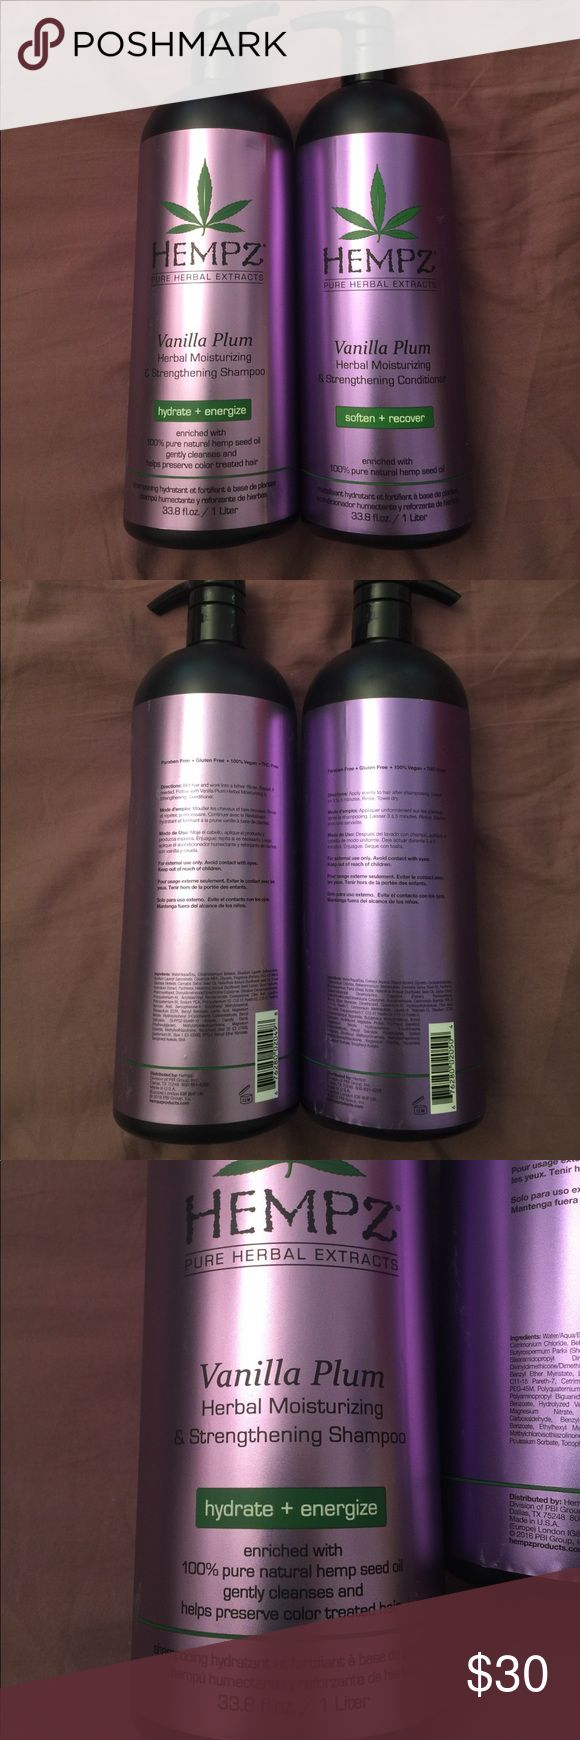 Hempz Vanilla Plum Shampoo & Conditioner Liter Duo Brand new Hempz Vanilla Plum Herbal Moisturizing and Strengthening Shampoo and Conditioner liters!  This formula is enriched with 100% pure natural hemp seed oil to gently cleanse and preserve color treated hair!! Retails for $26.99 each! Hempz Other